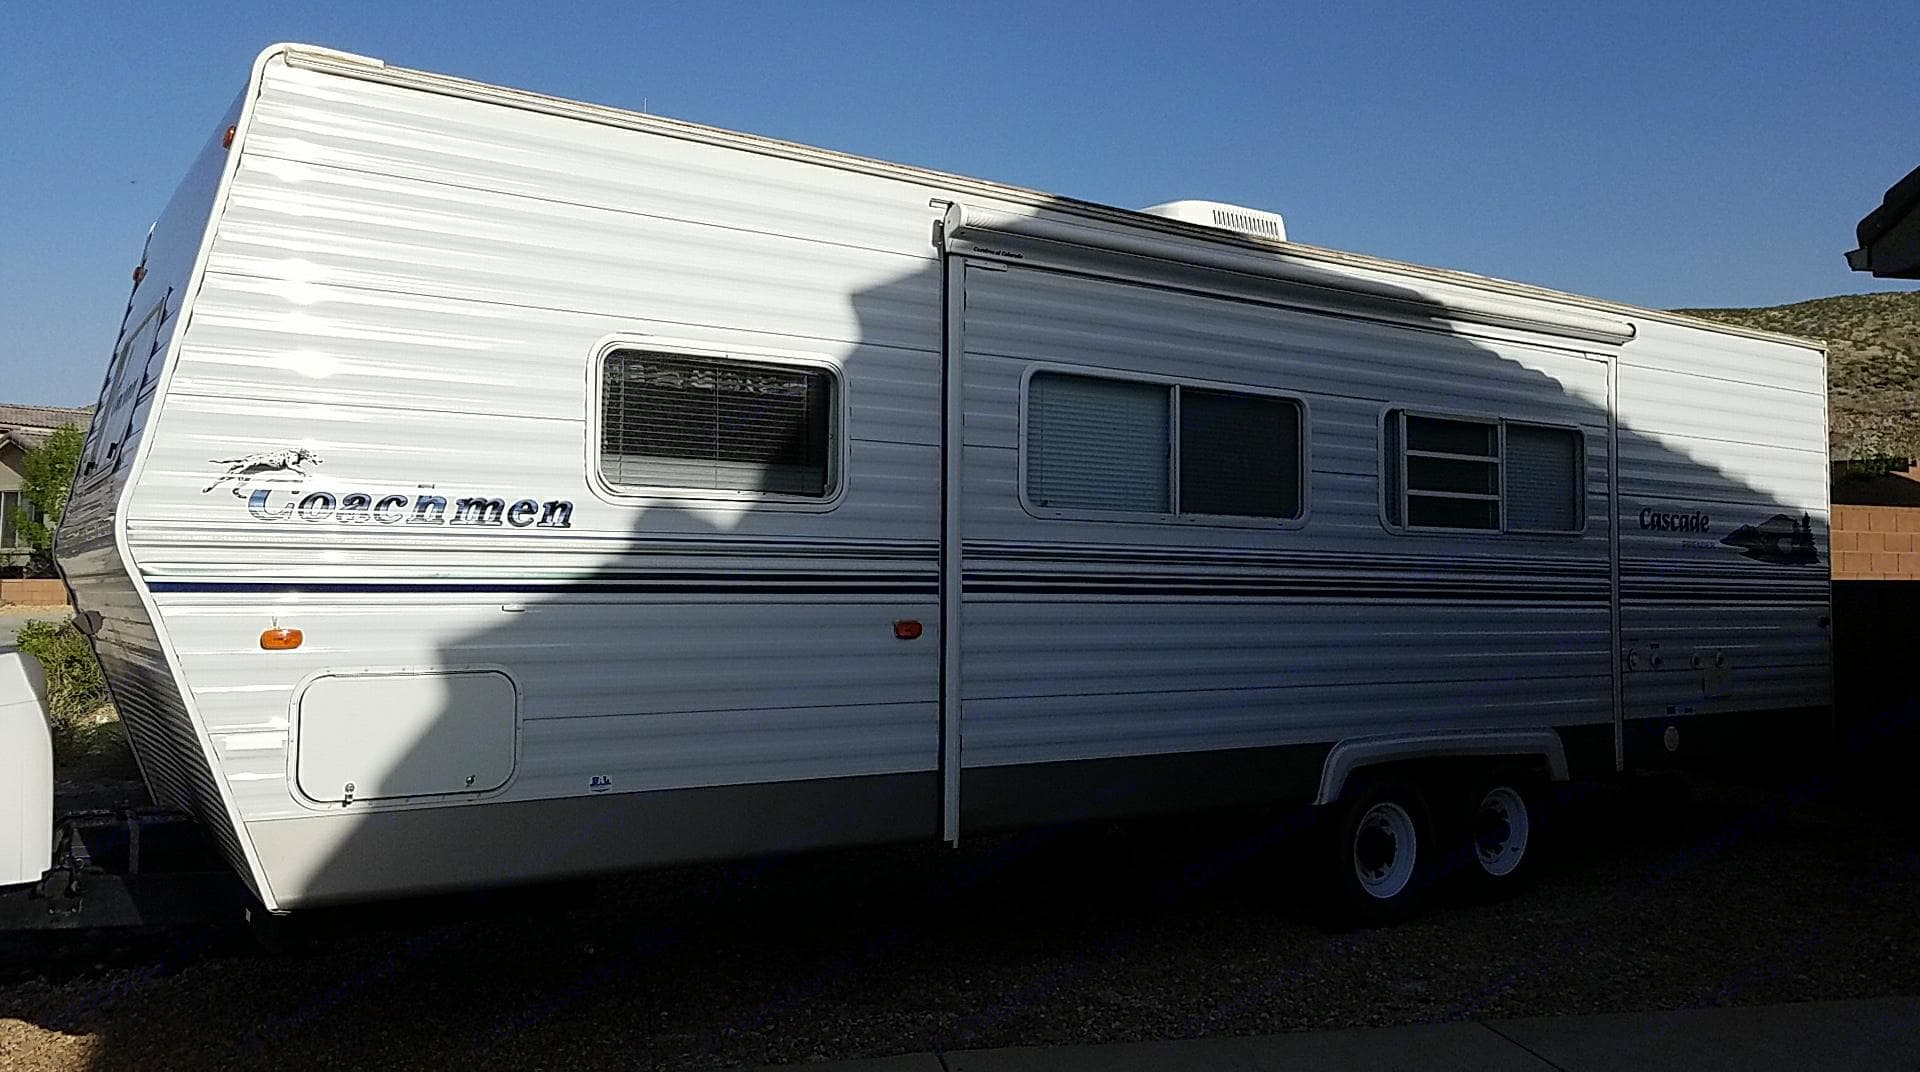 30 ft excellent condition 2004 coachman, with 16 ft electric pull out this side. . Coachmen Cascade 2004